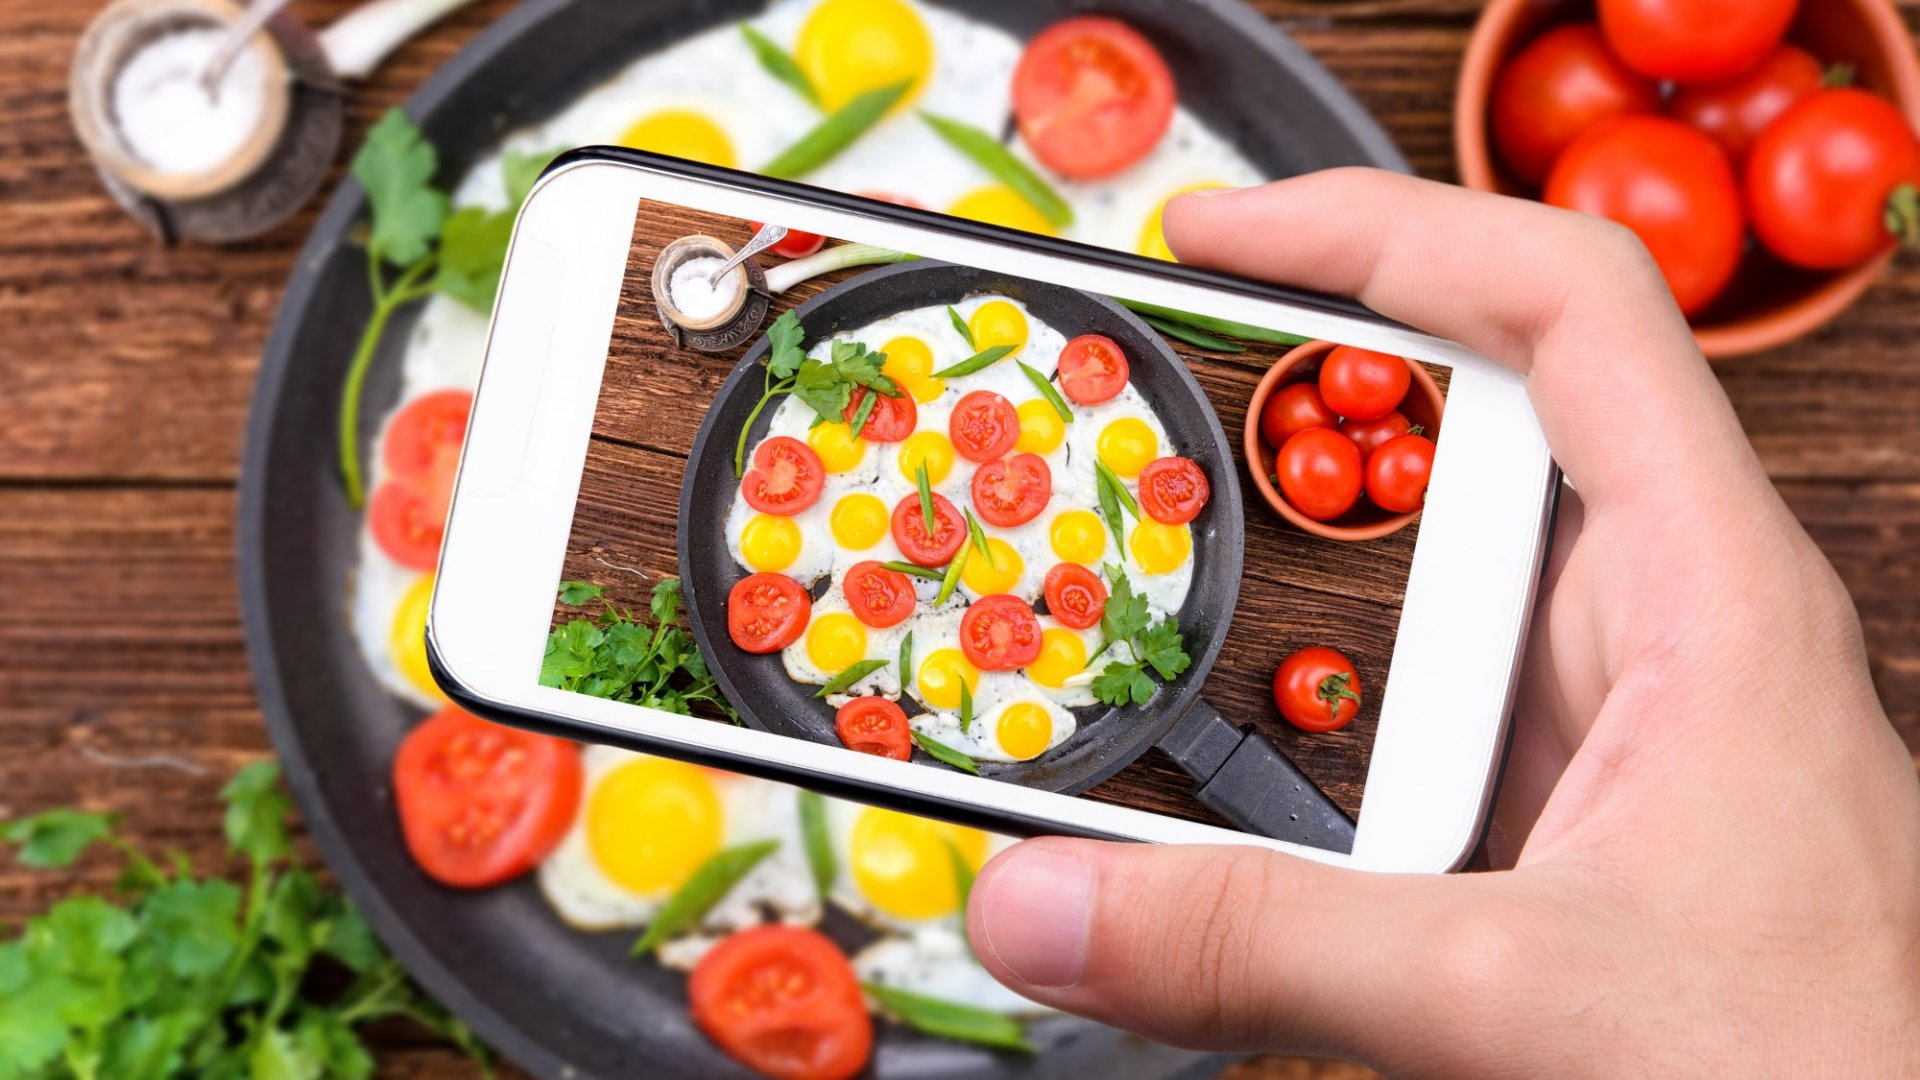 Want To Be An Instagram Foodie? Consider Being A Curator, Not A Creator